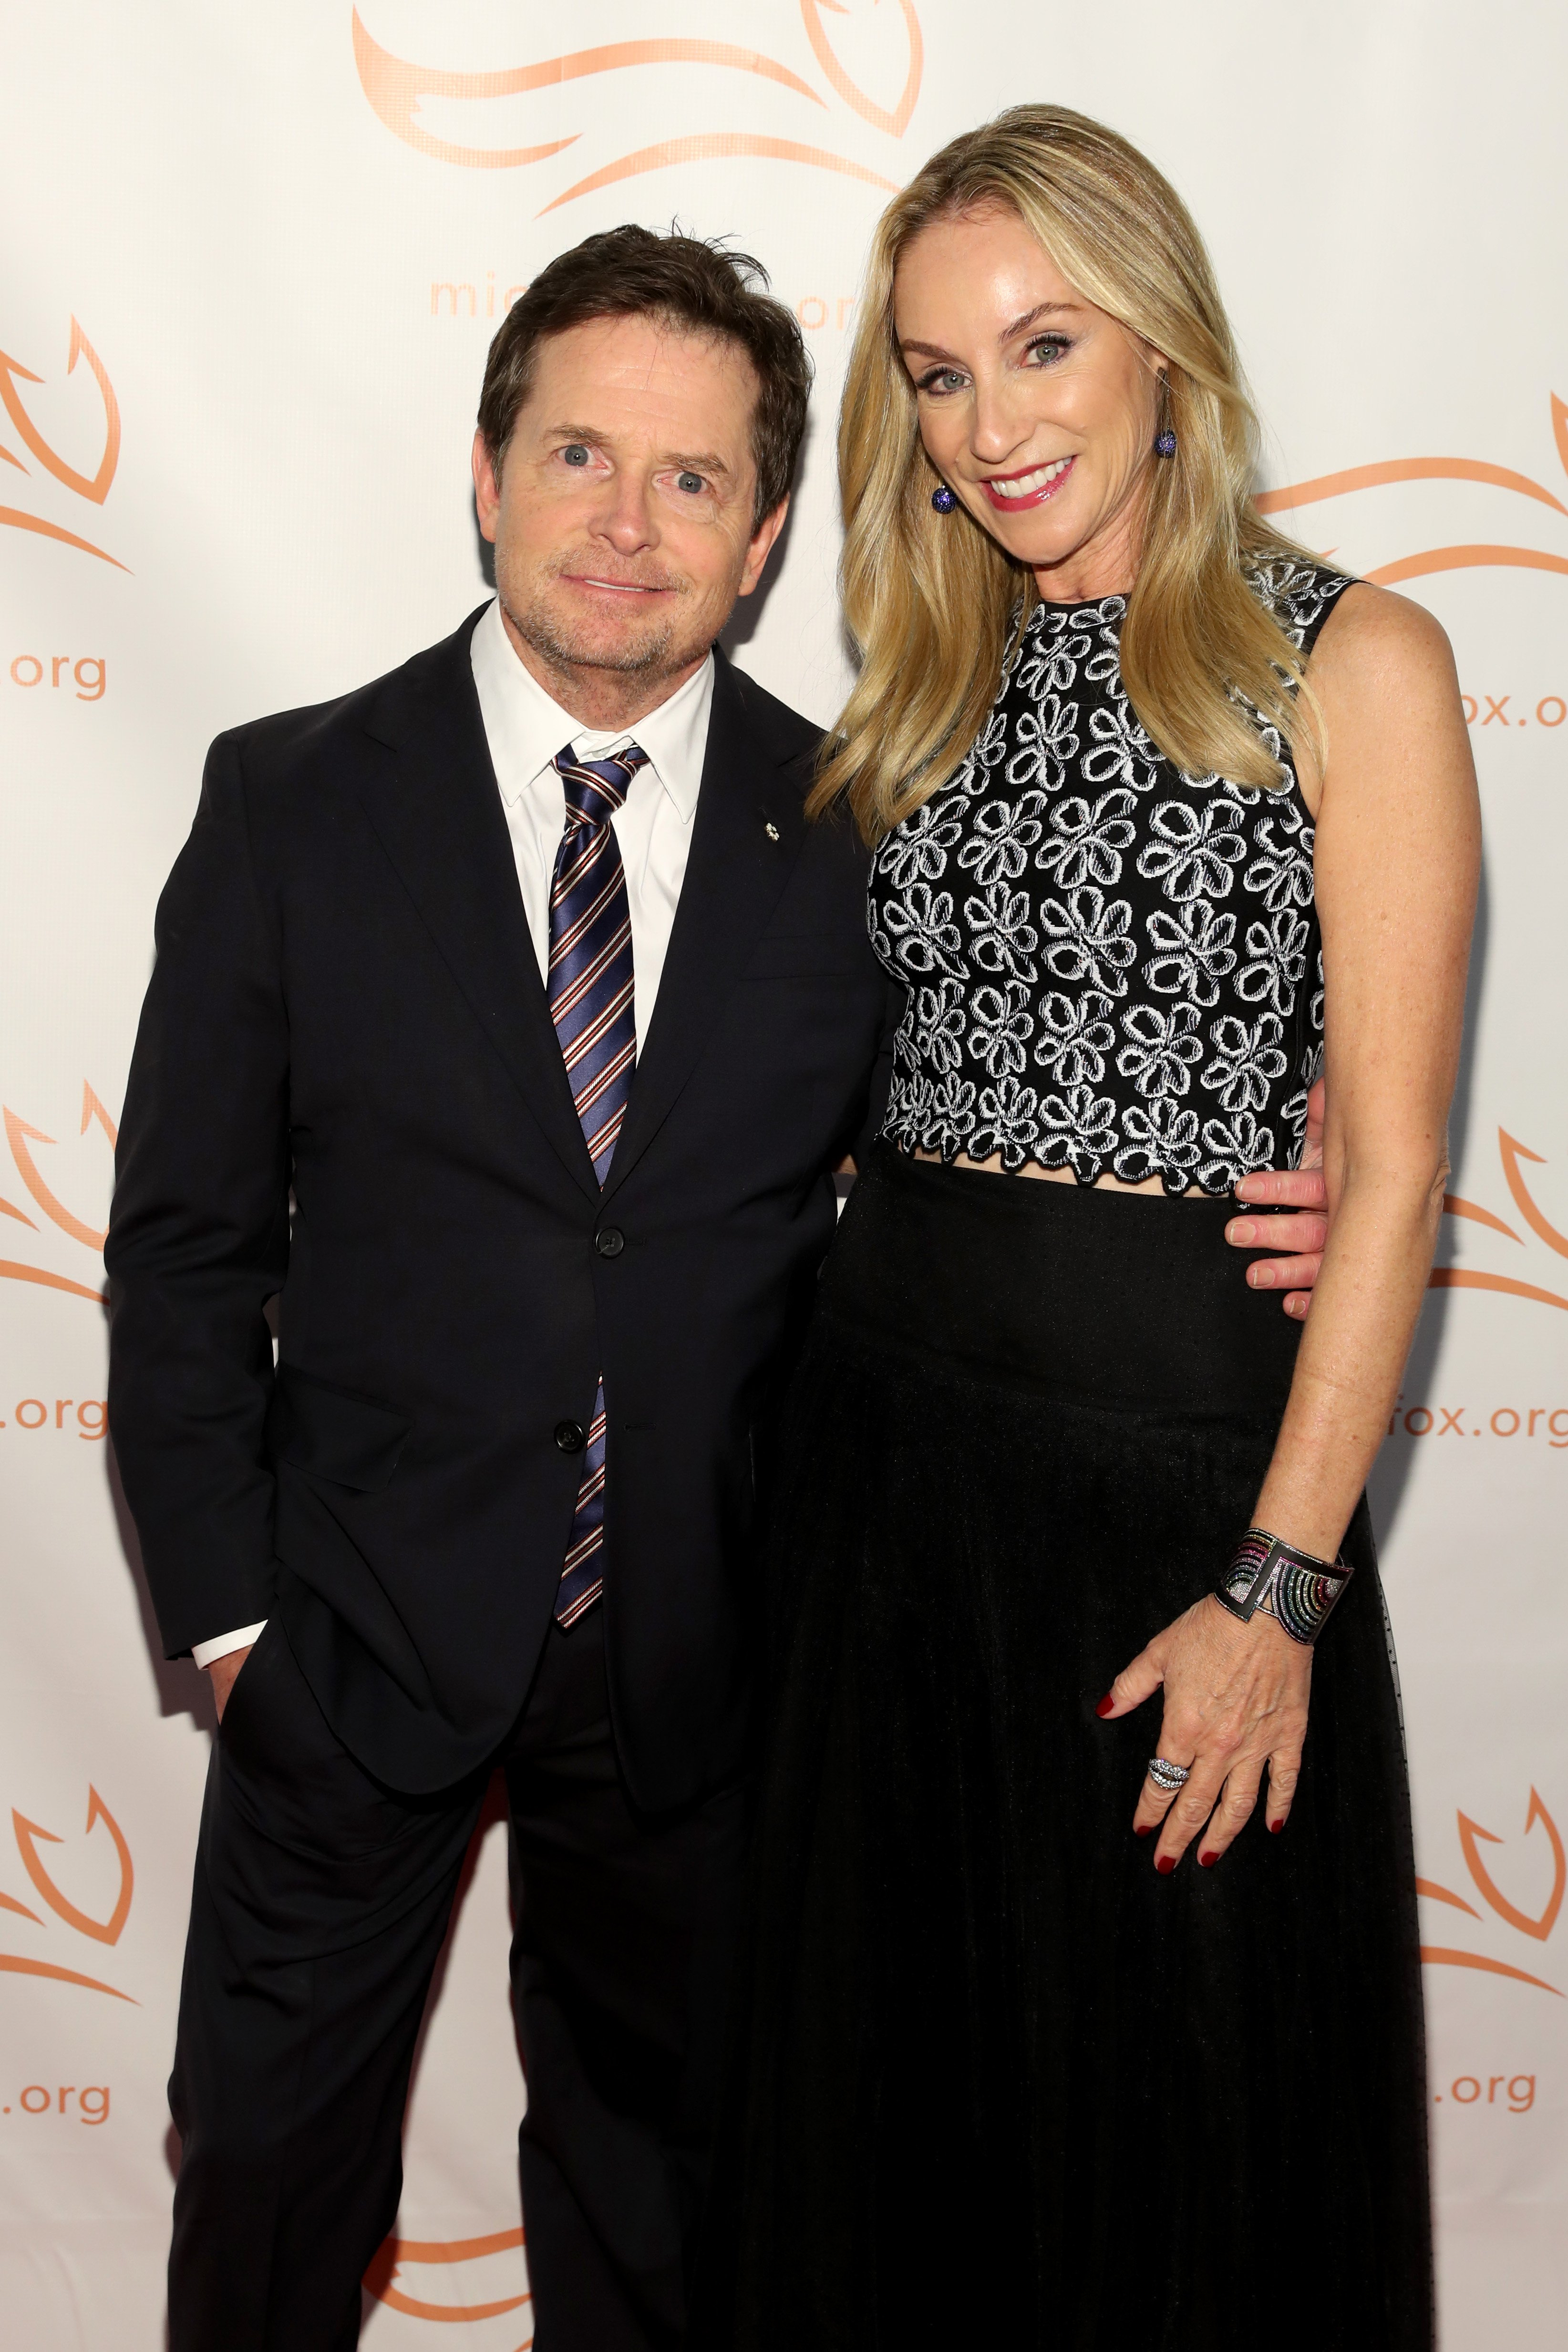 Michael J. Fox and Tracy Pollan attend Fox's Parkinson's foundation benefit in New York City on November 10, 2018 | Photo: Getty Images